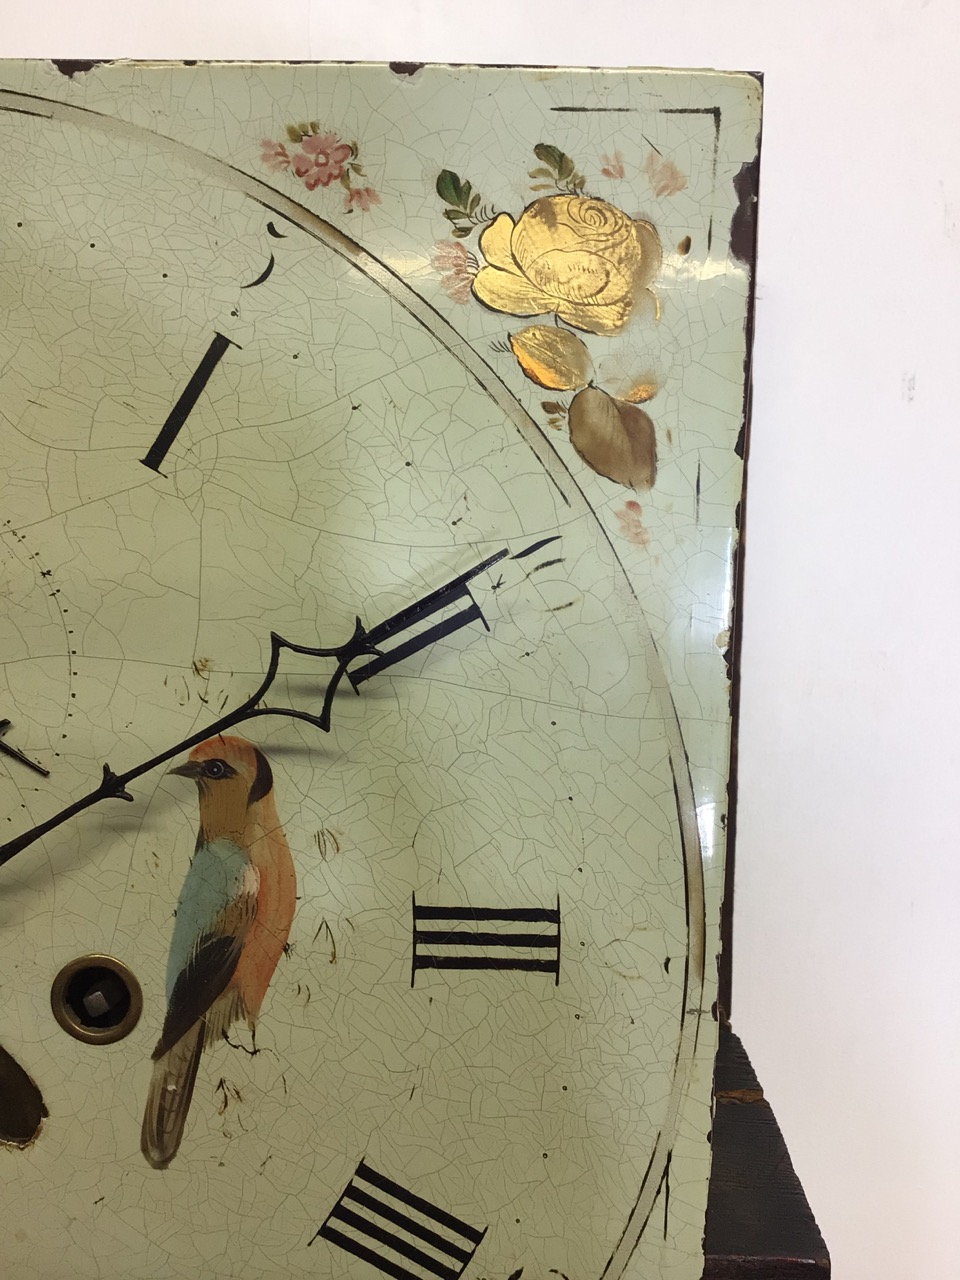 An 8 day mahogany longcase clock with weights and pendulum and key with painted face depicting birds - Image 8 of 10